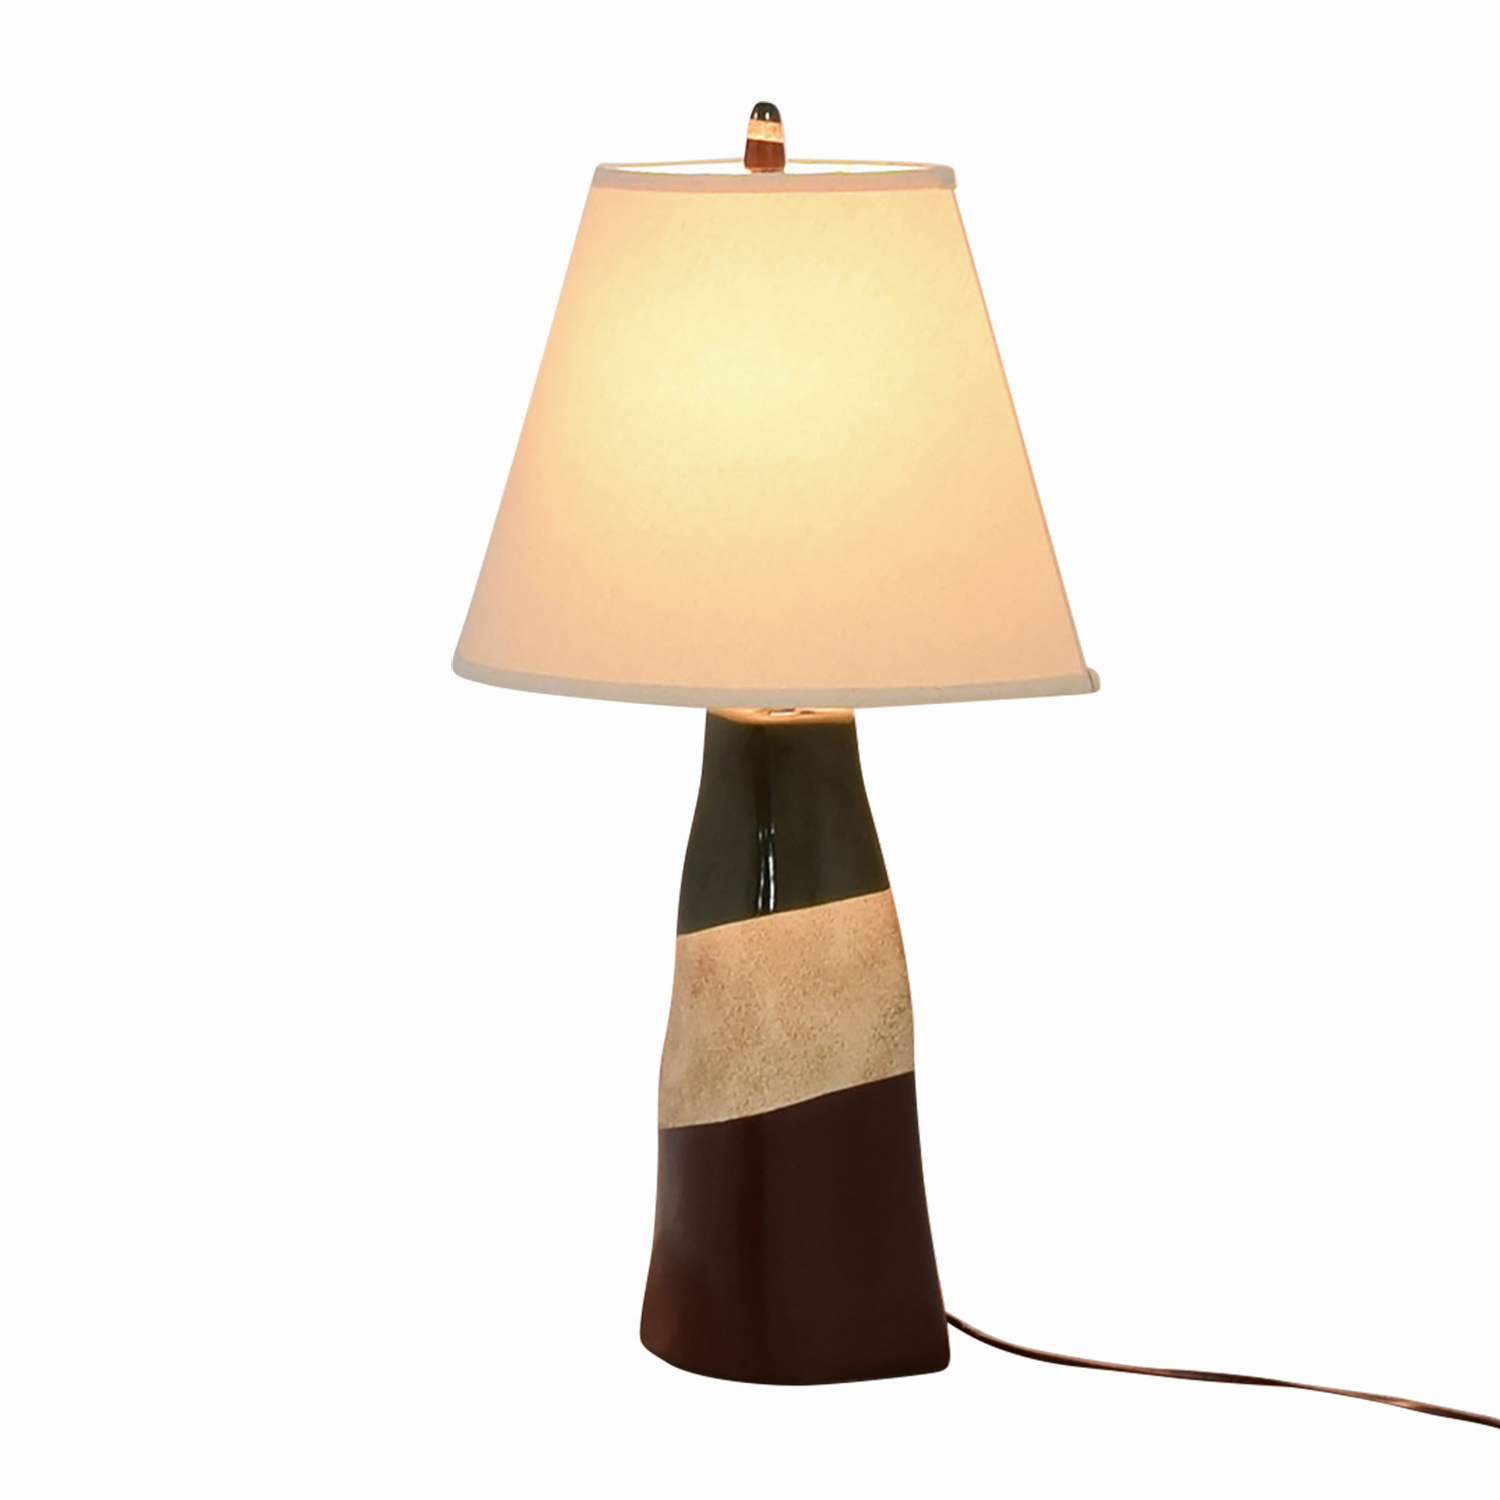 Brown Green and Beige Ceramic Table Lamp dimensions